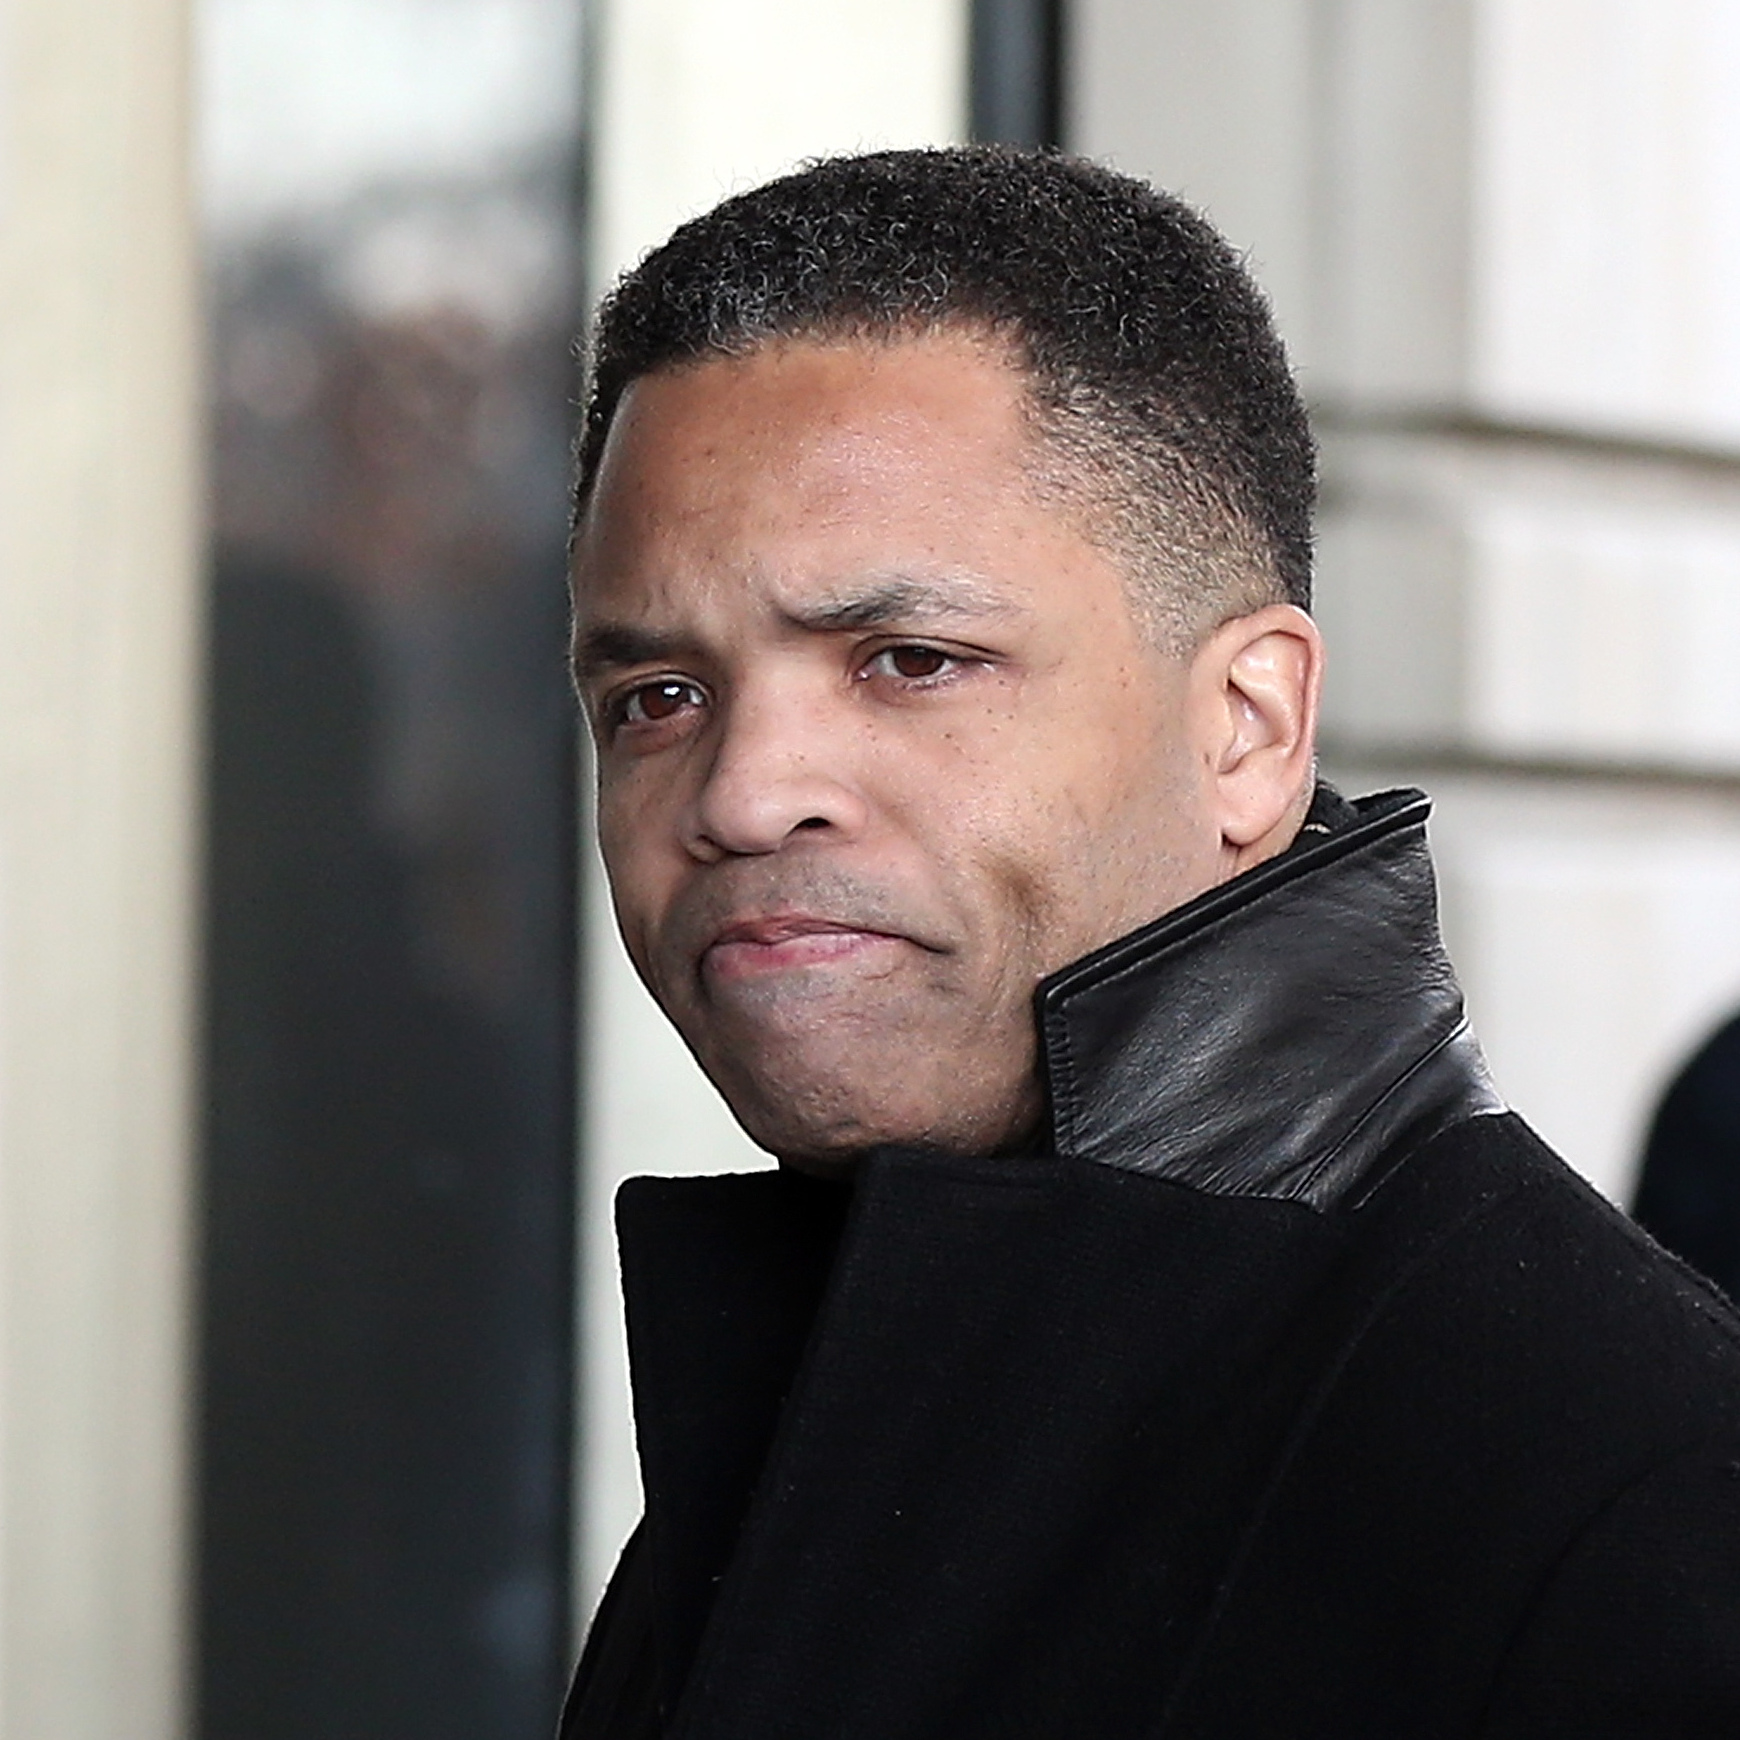 Guilty Plea From Jesse Jackson Jr. Over 'Lavish' Spending : NPR